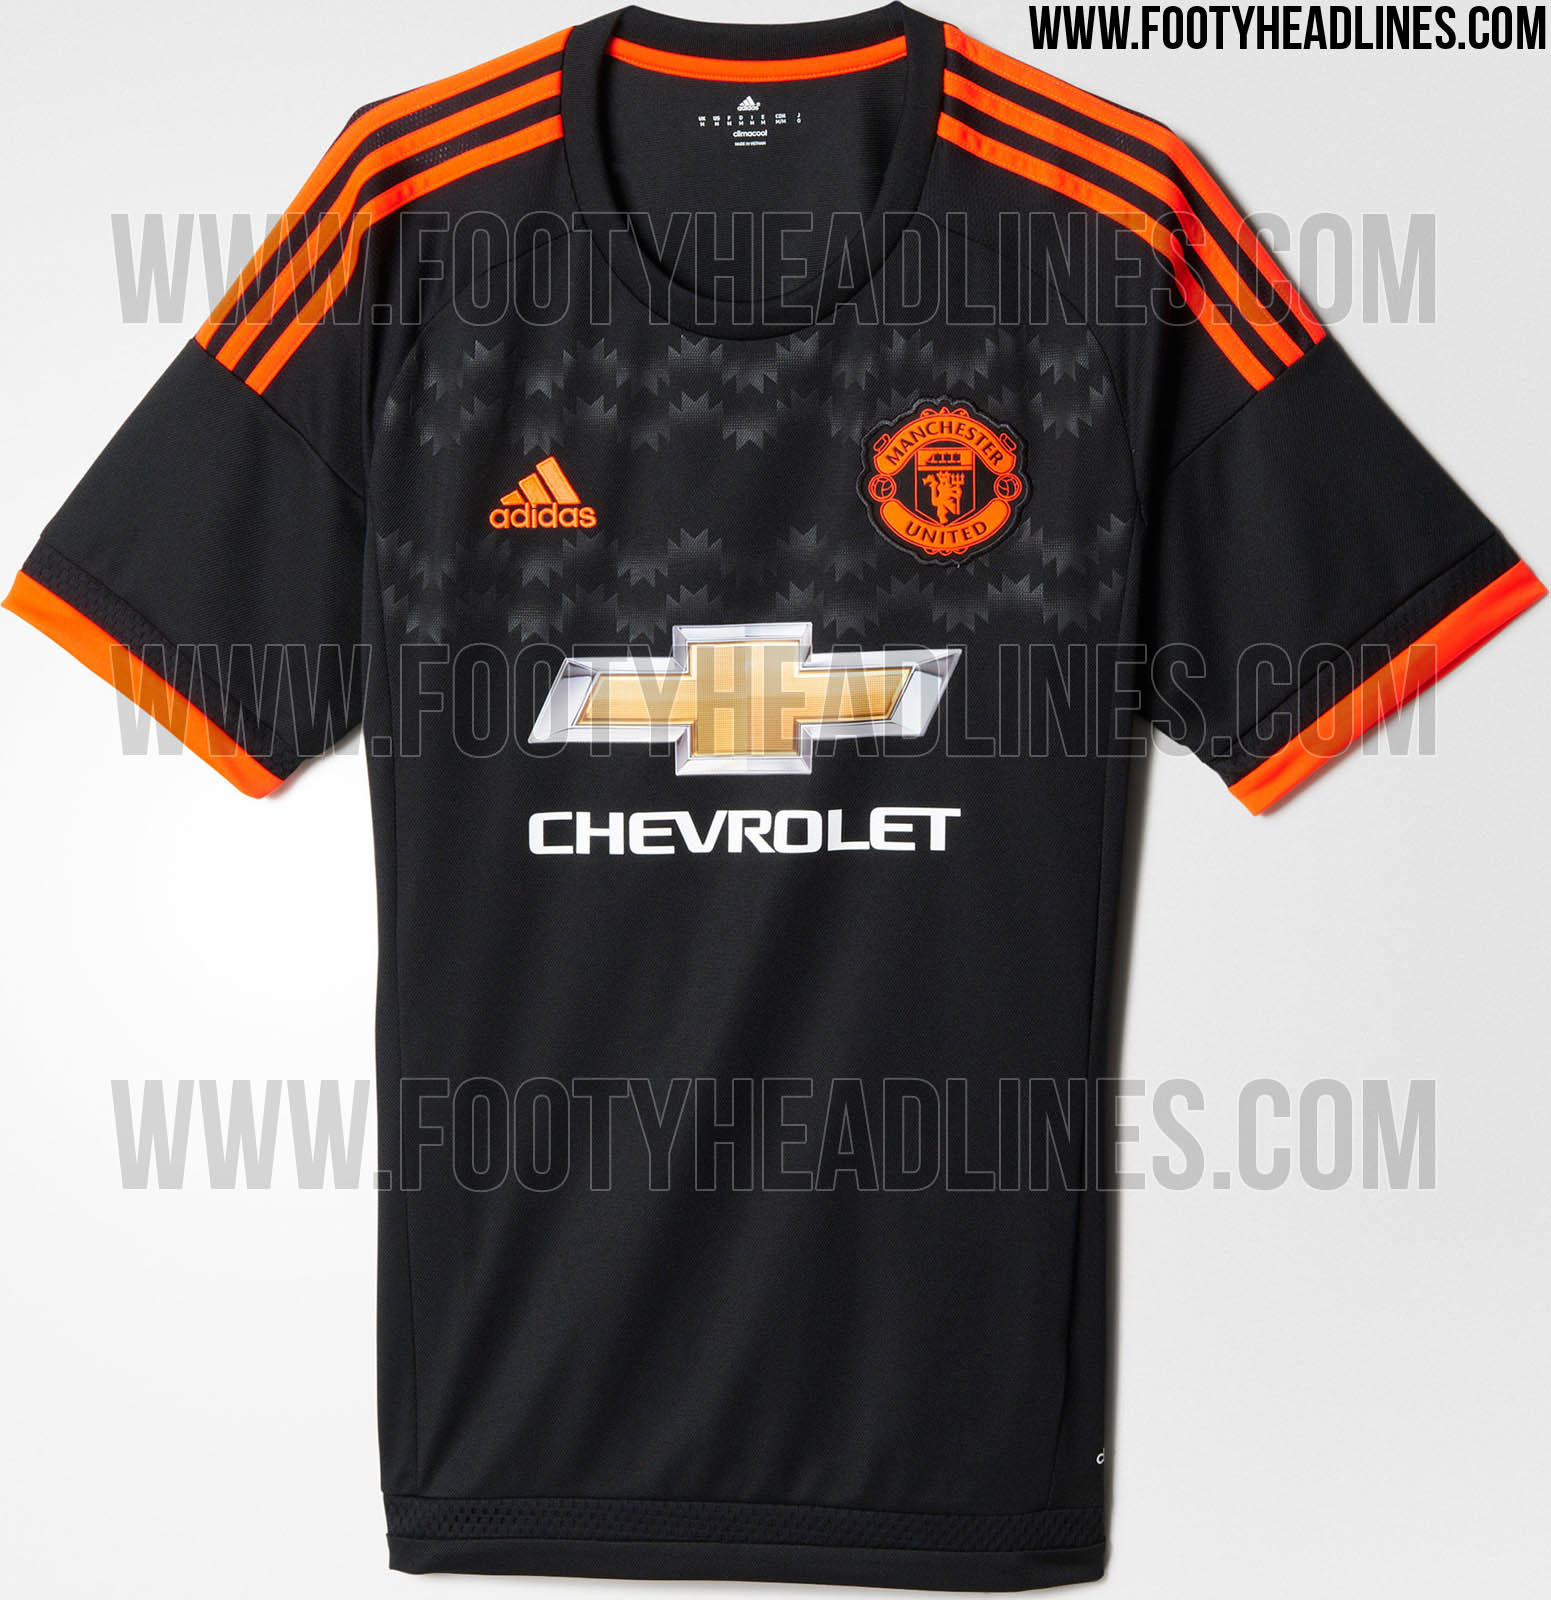 Adidas Manchester United 15-16 Kits Released - Footy Headlines